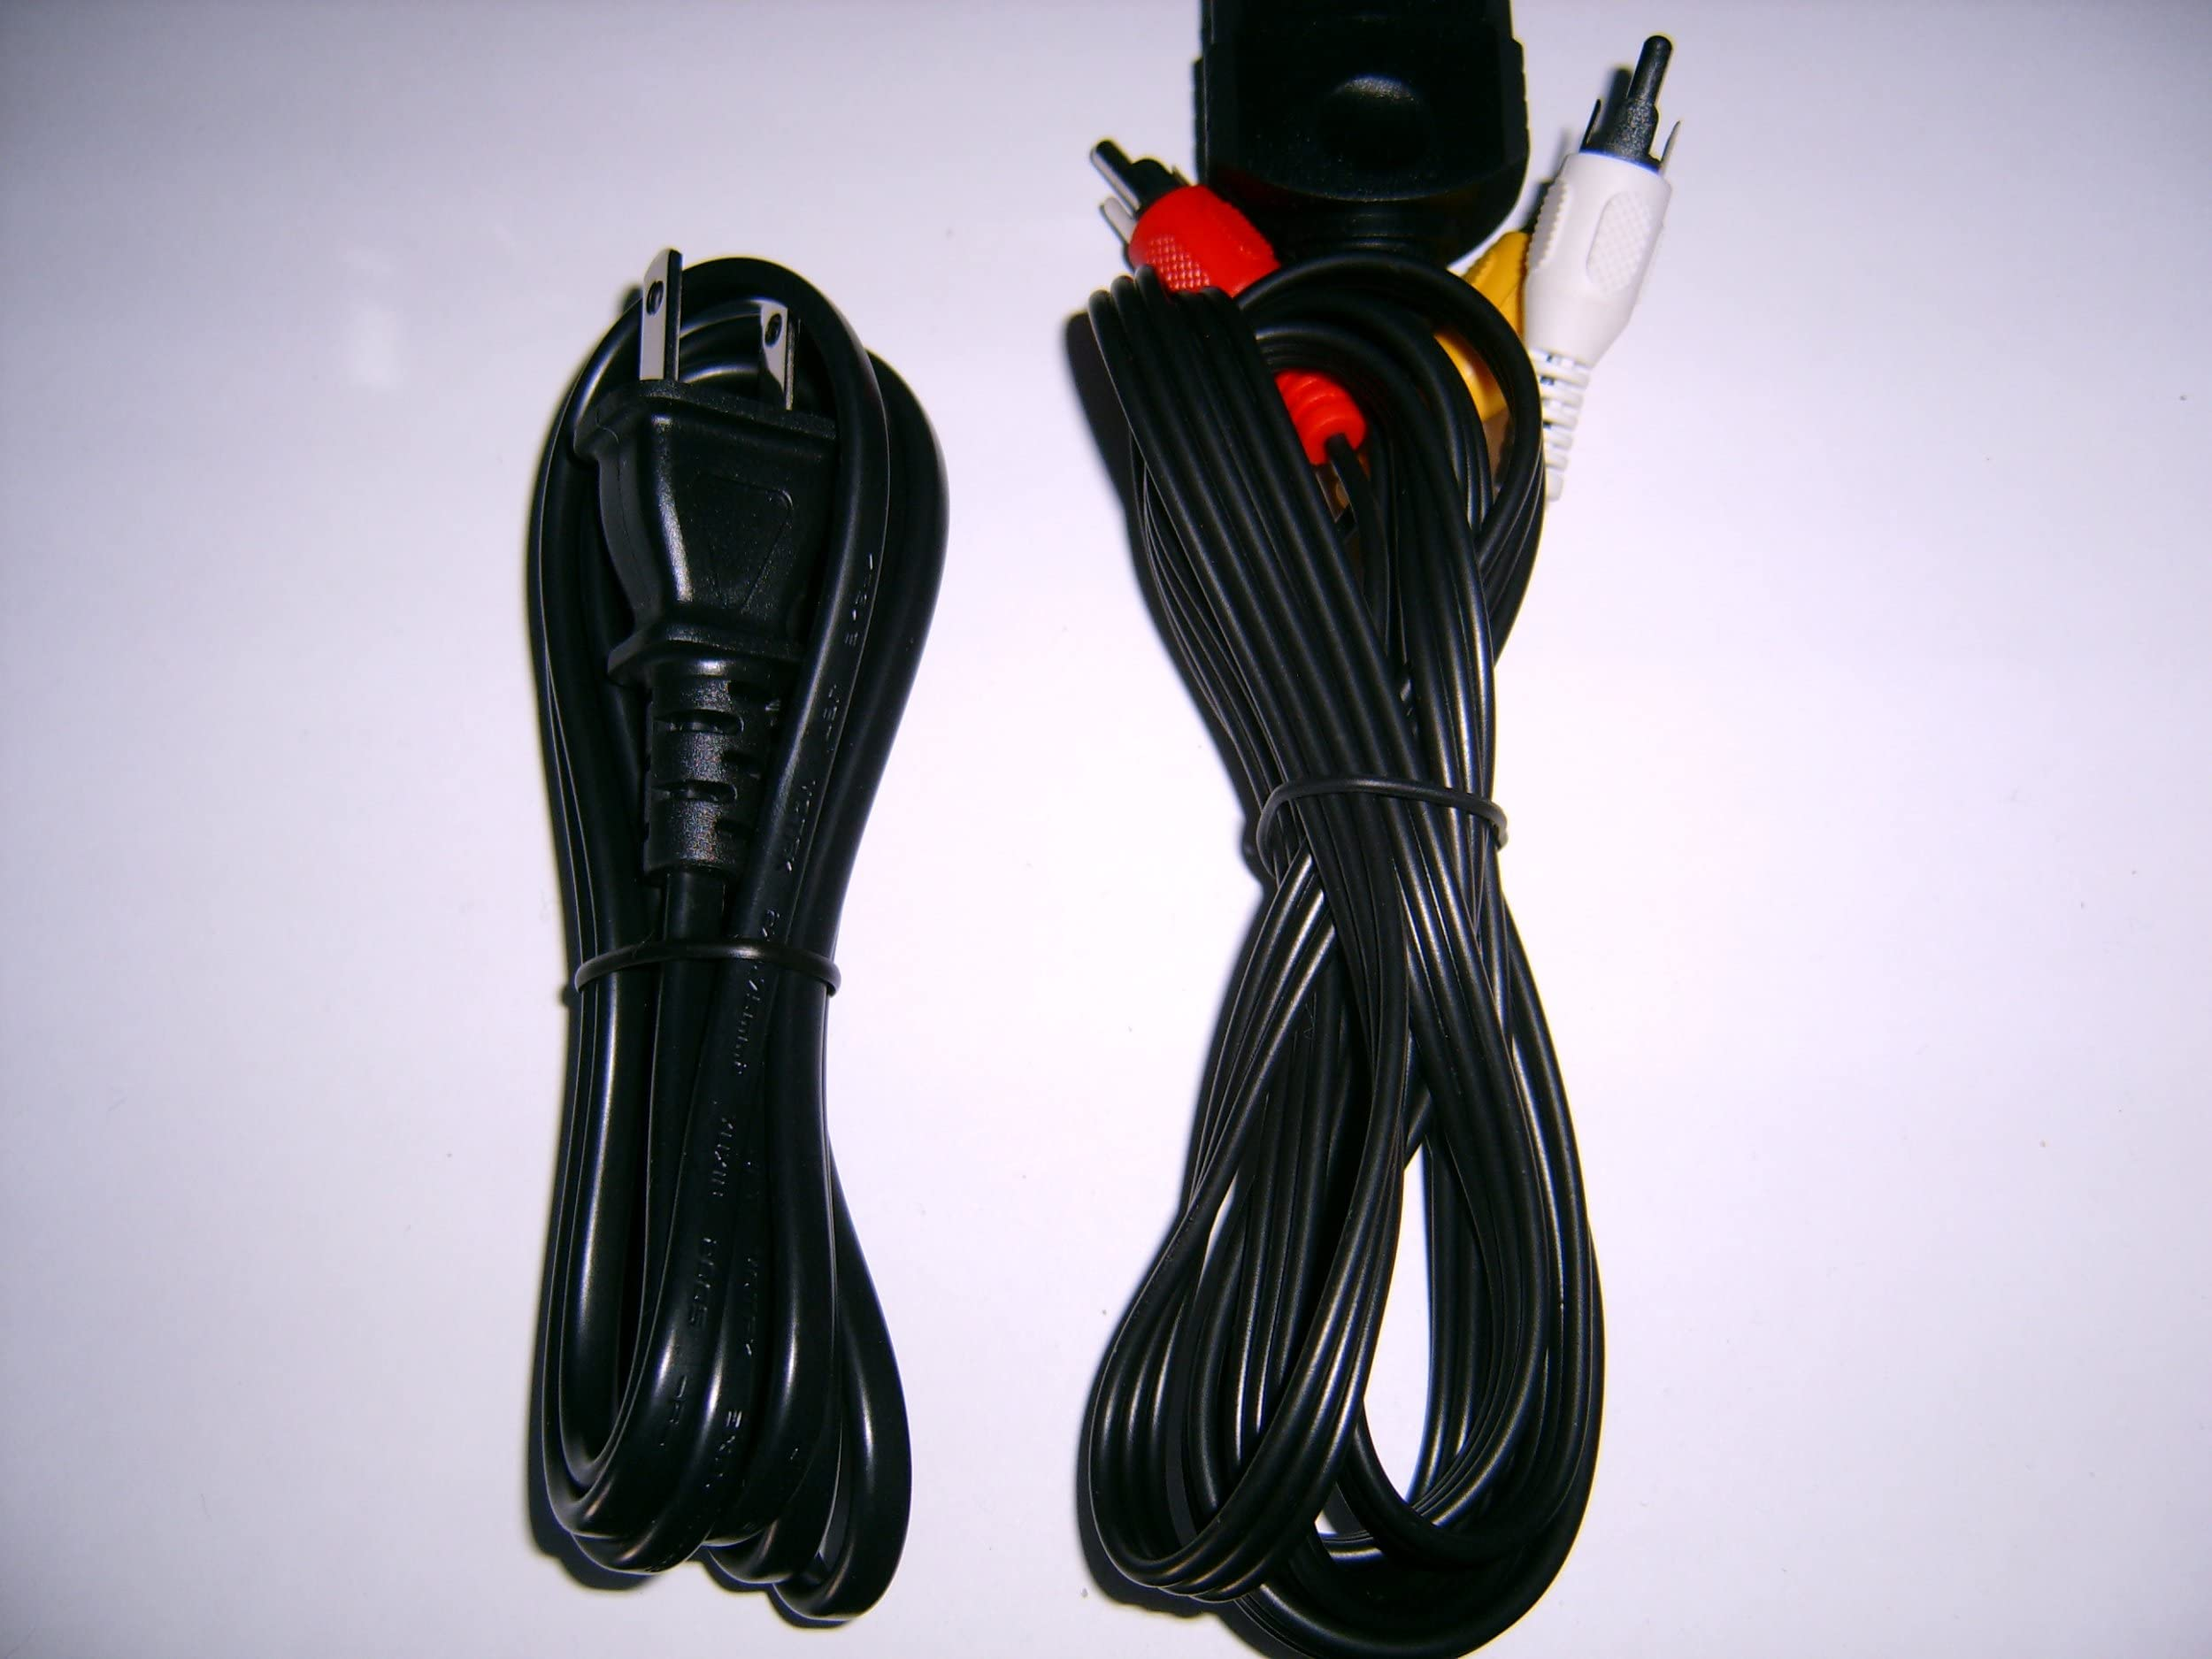 Mizar Replacement Av Cables Ac Power Cord For Xbox Wiring Image Unavailable